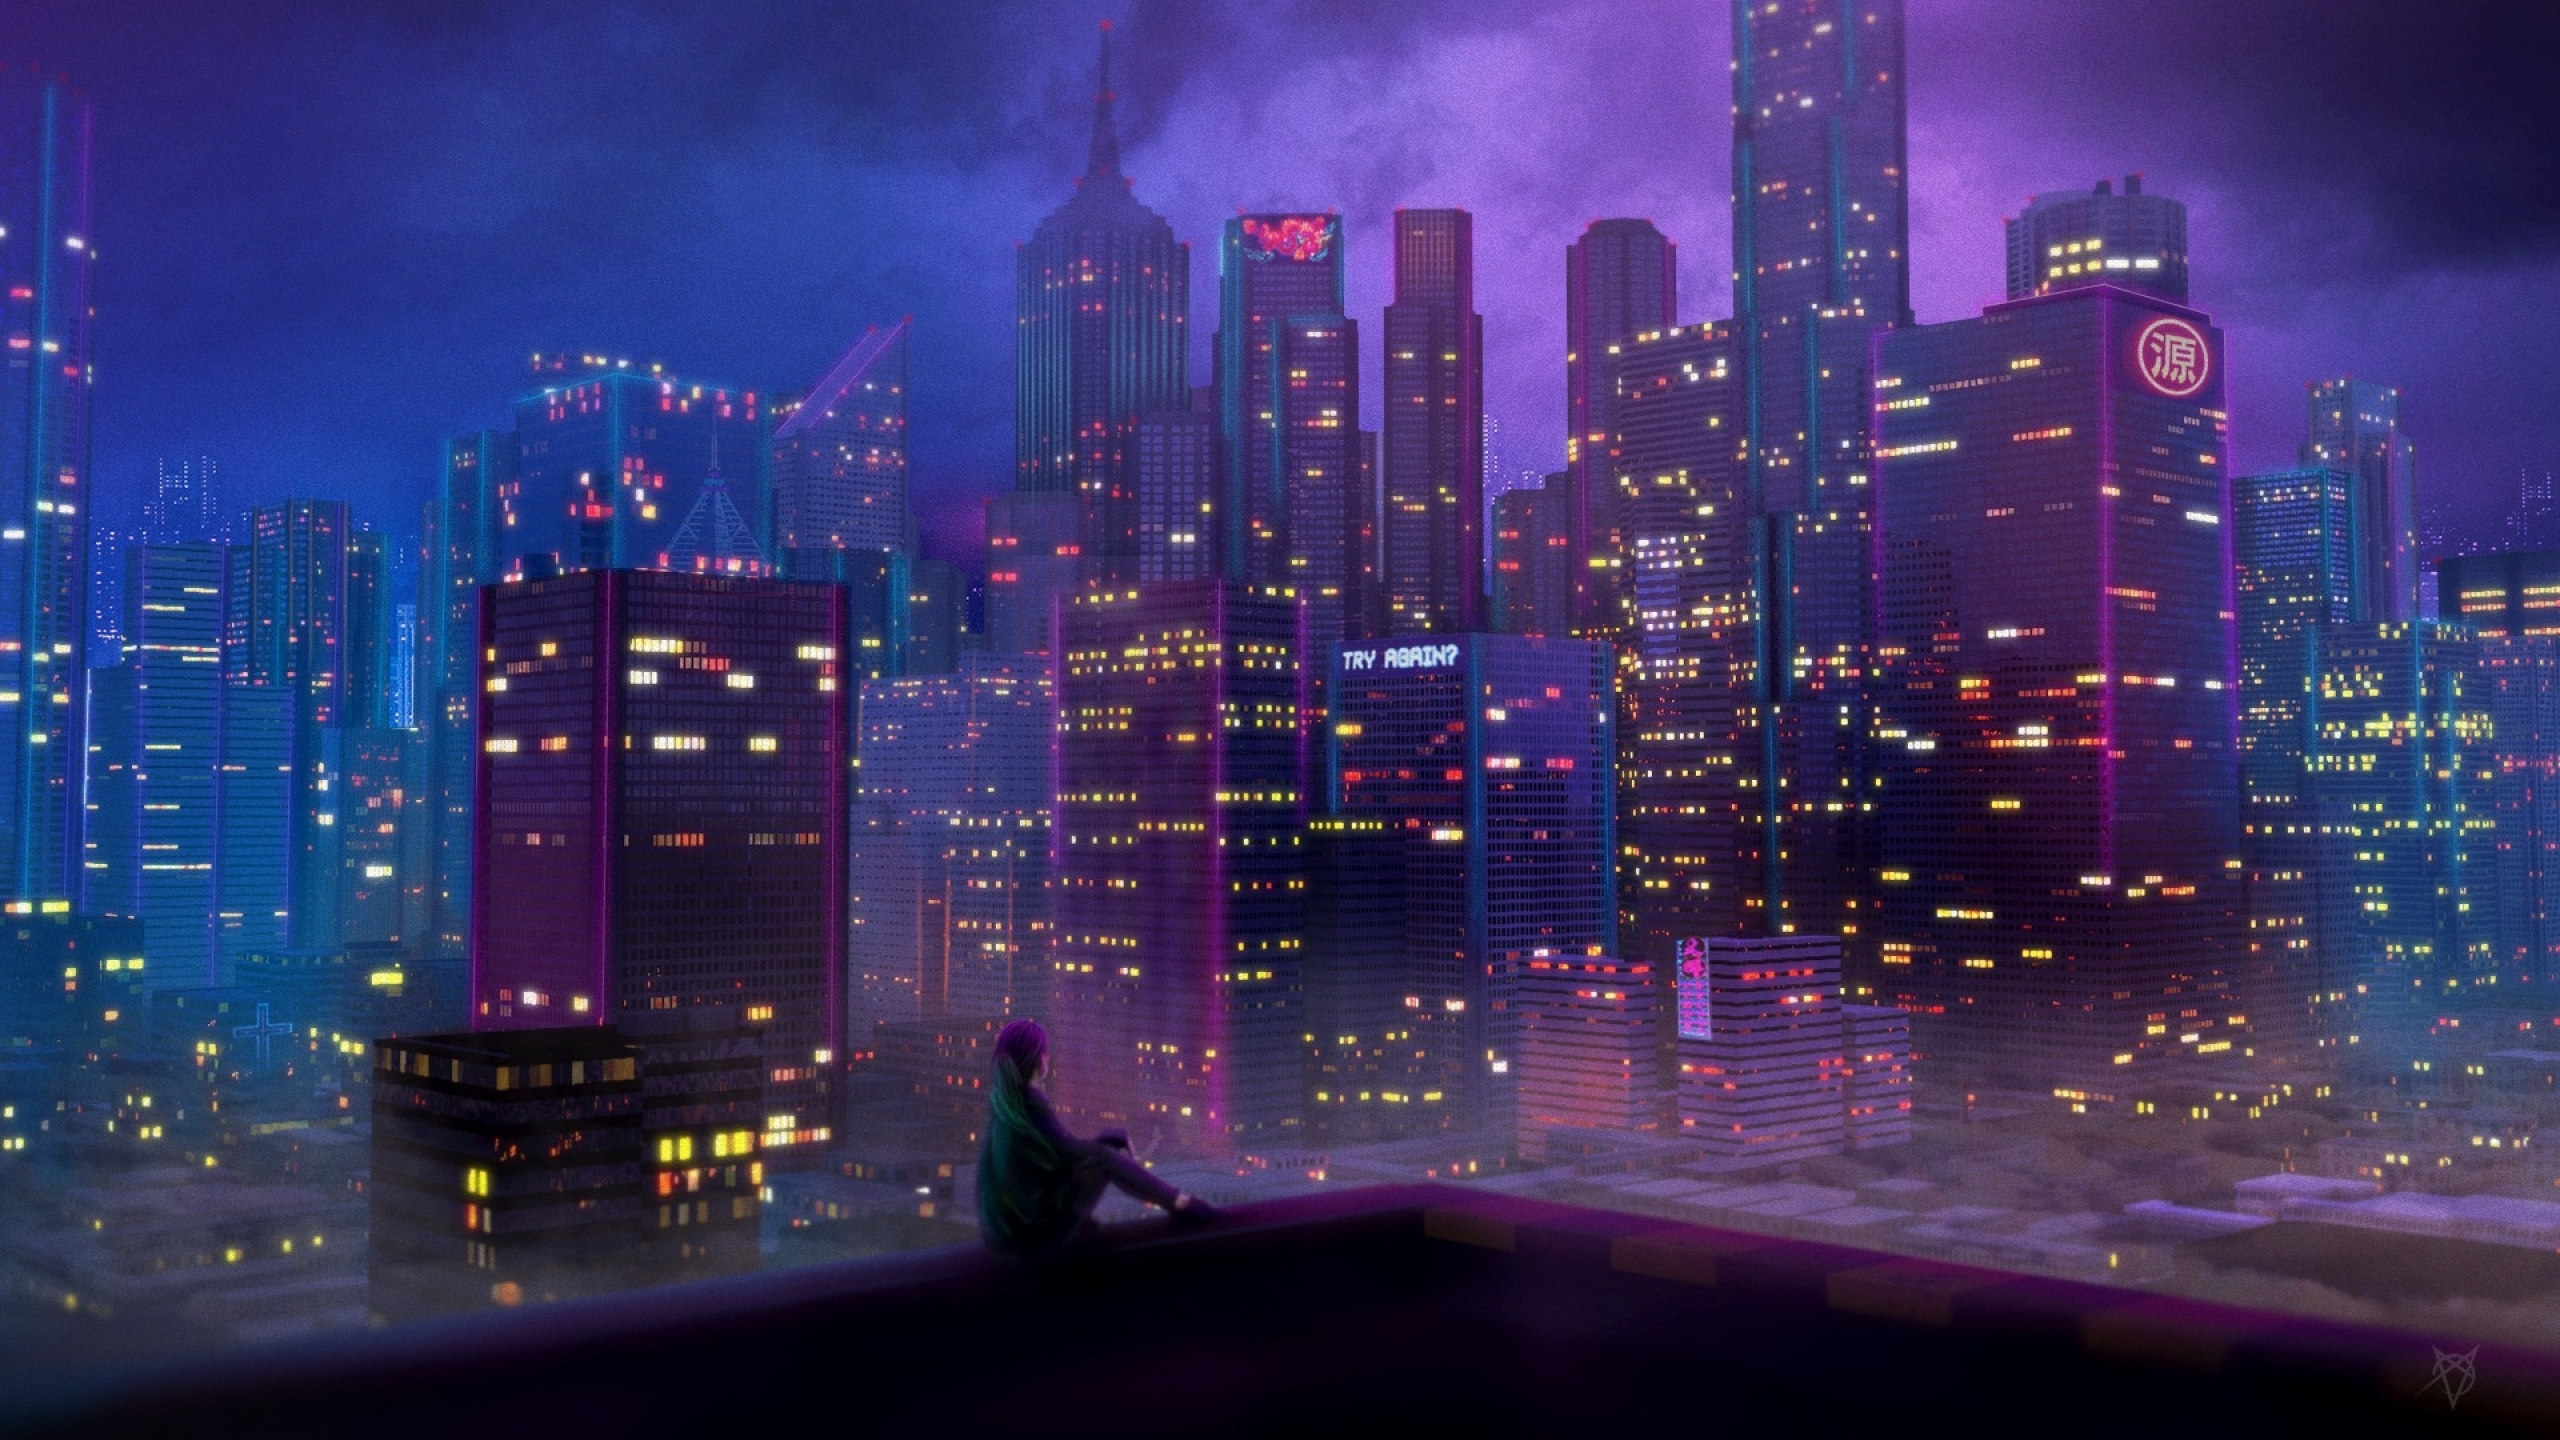 251 2517180 night city anime background